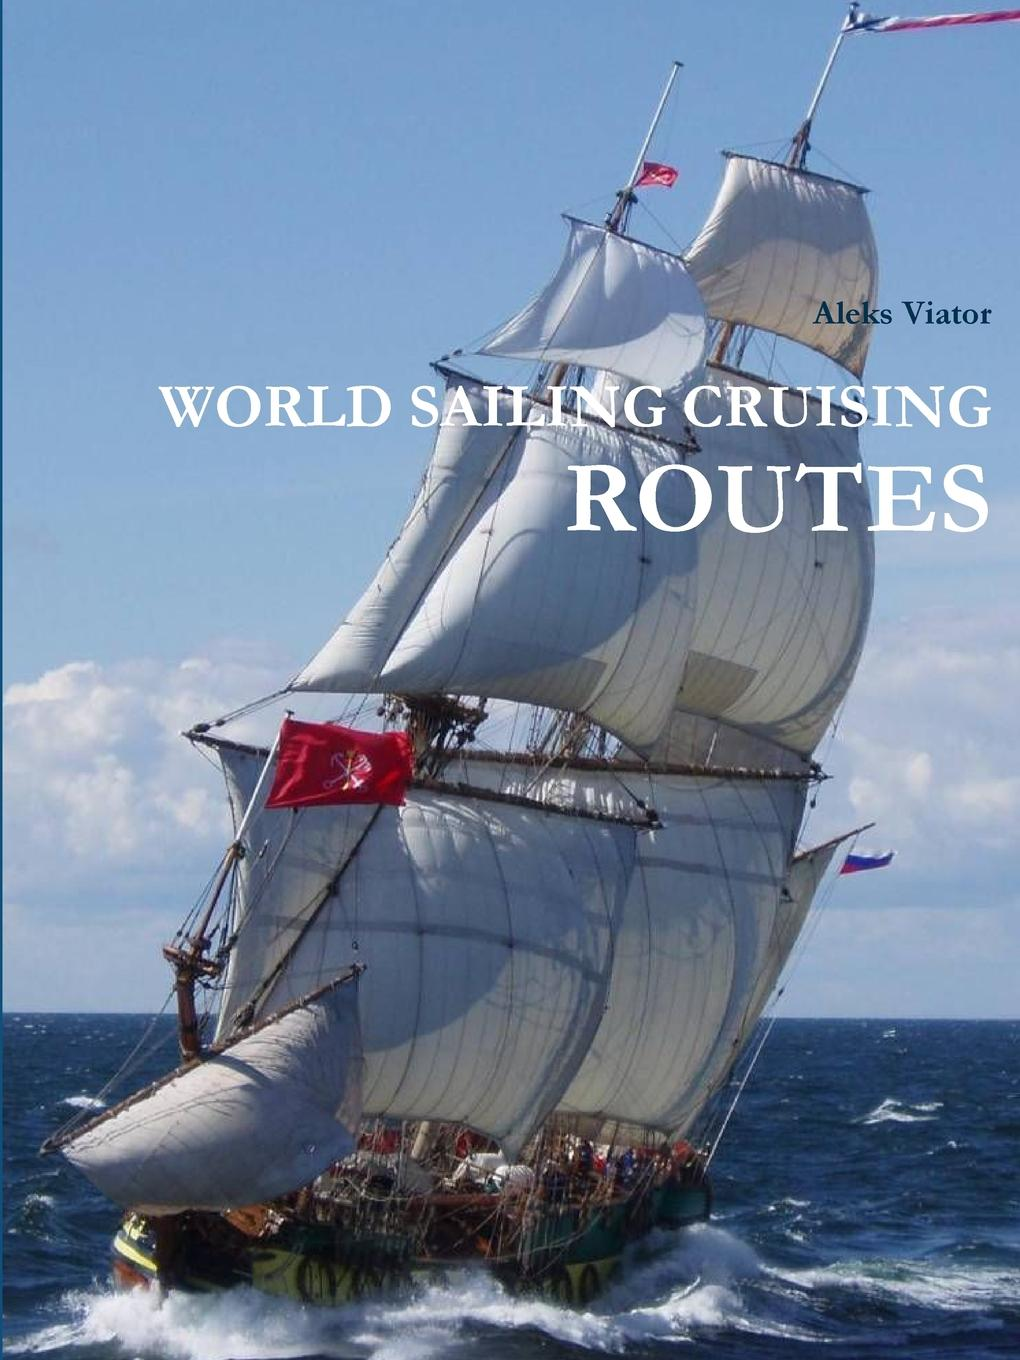 Aleks Viator WORLD SAILING CRUISING ROUTES